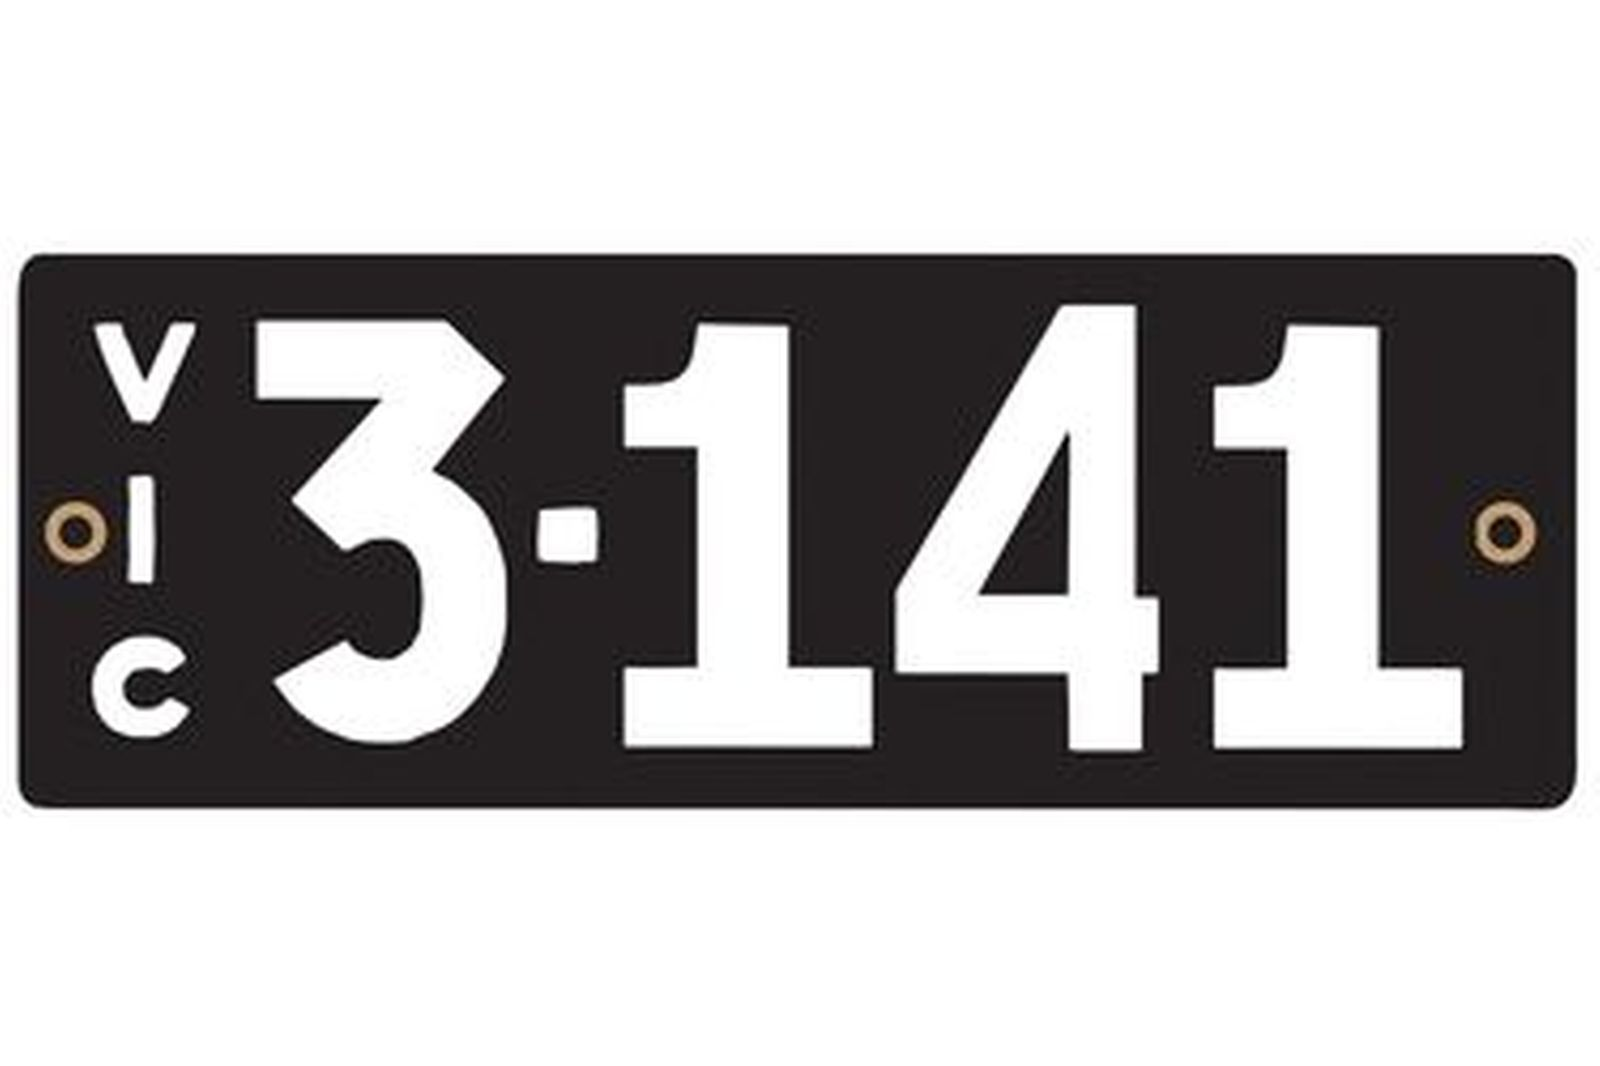 Victorian Heritage Numerical Number Plate - 3.141